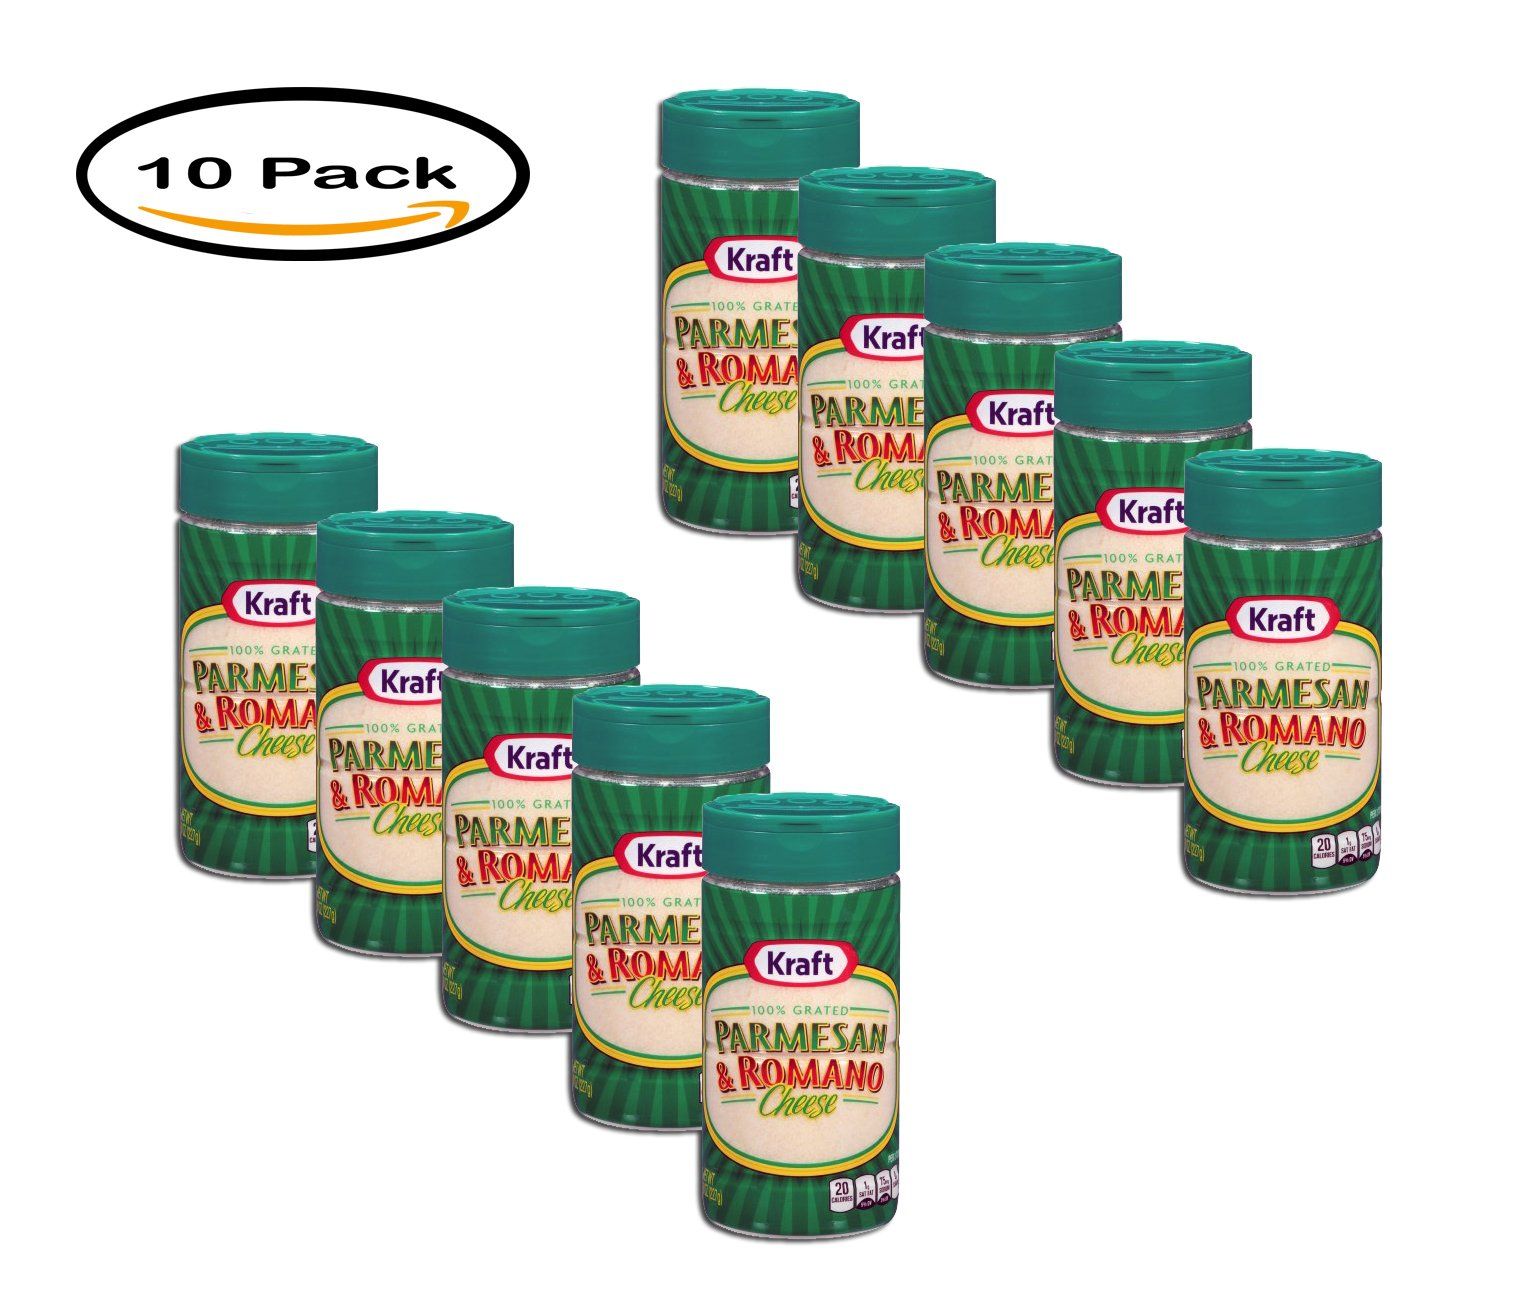 PACK OF 10 - Kraft Grated Parmesan & Romano Cheese, 8 Oz